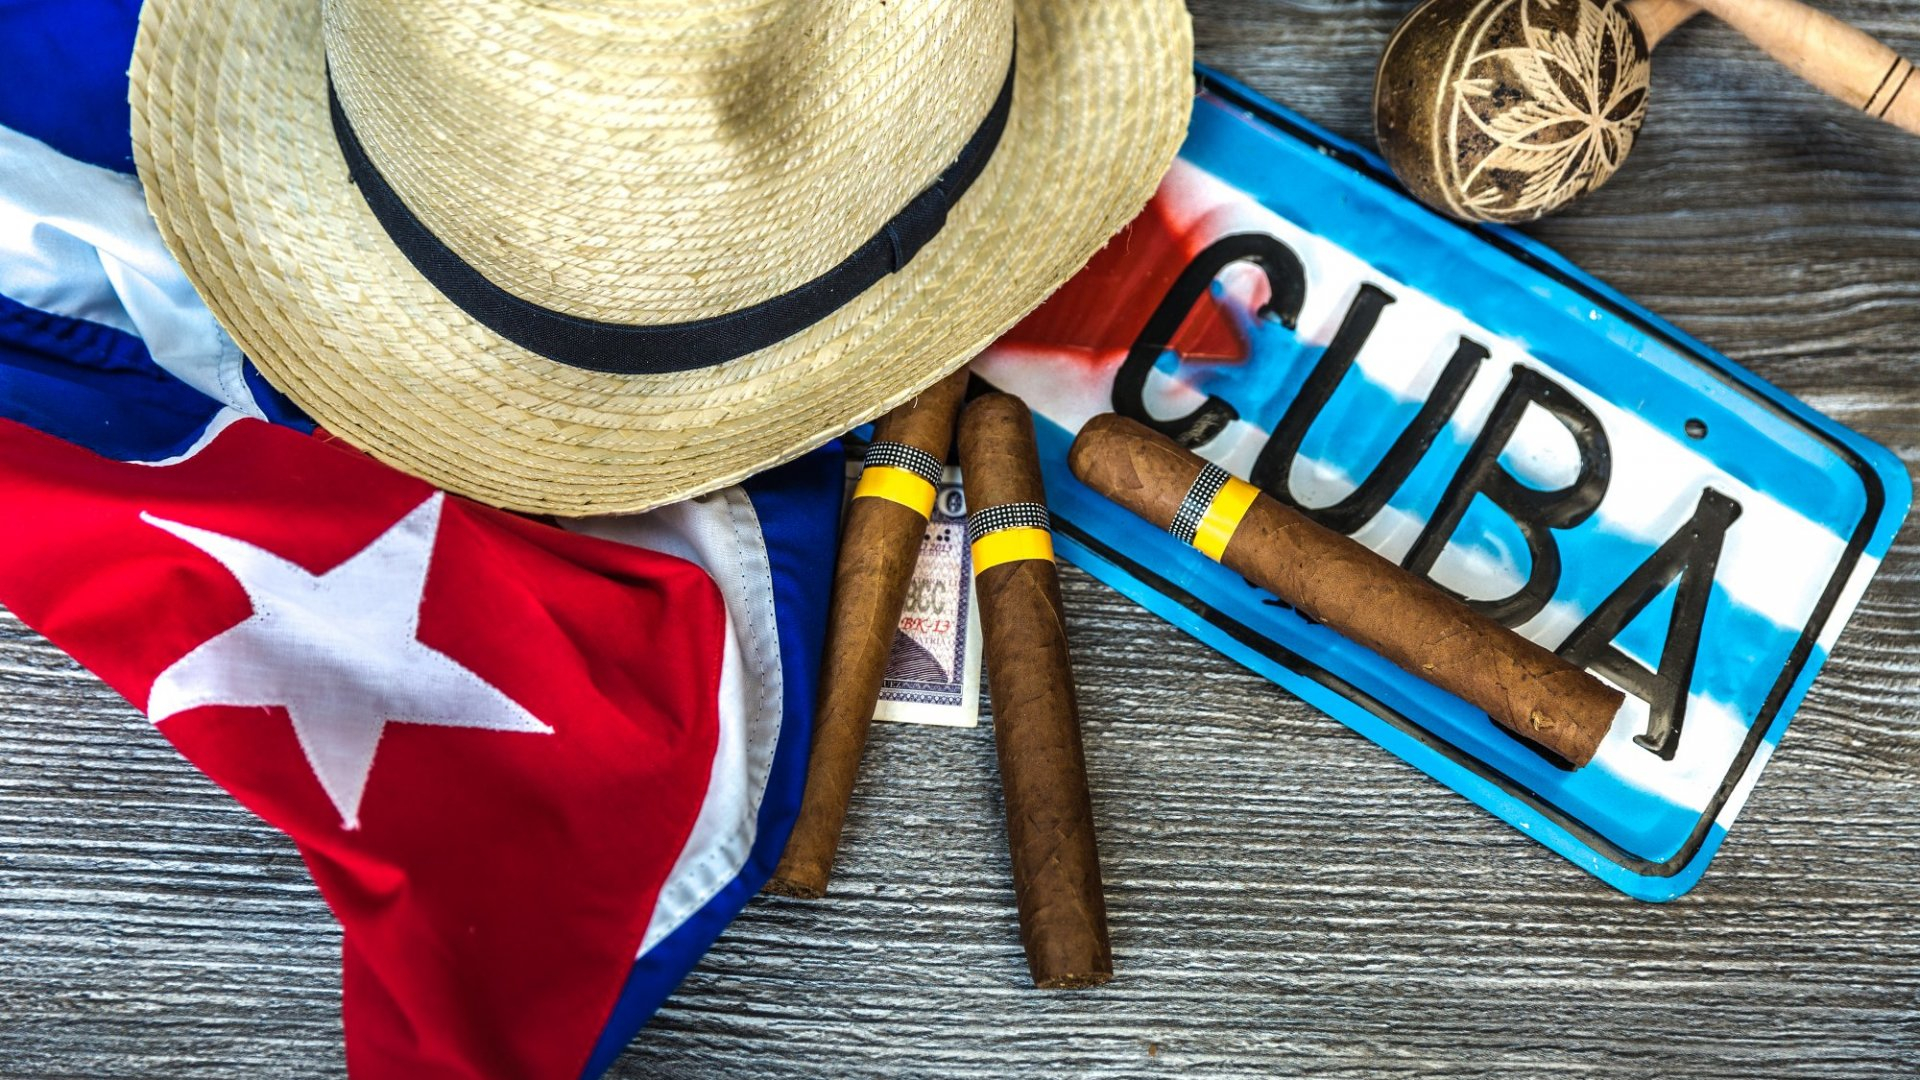 Should US Entrepreneurs Make Their Way to Cuba?